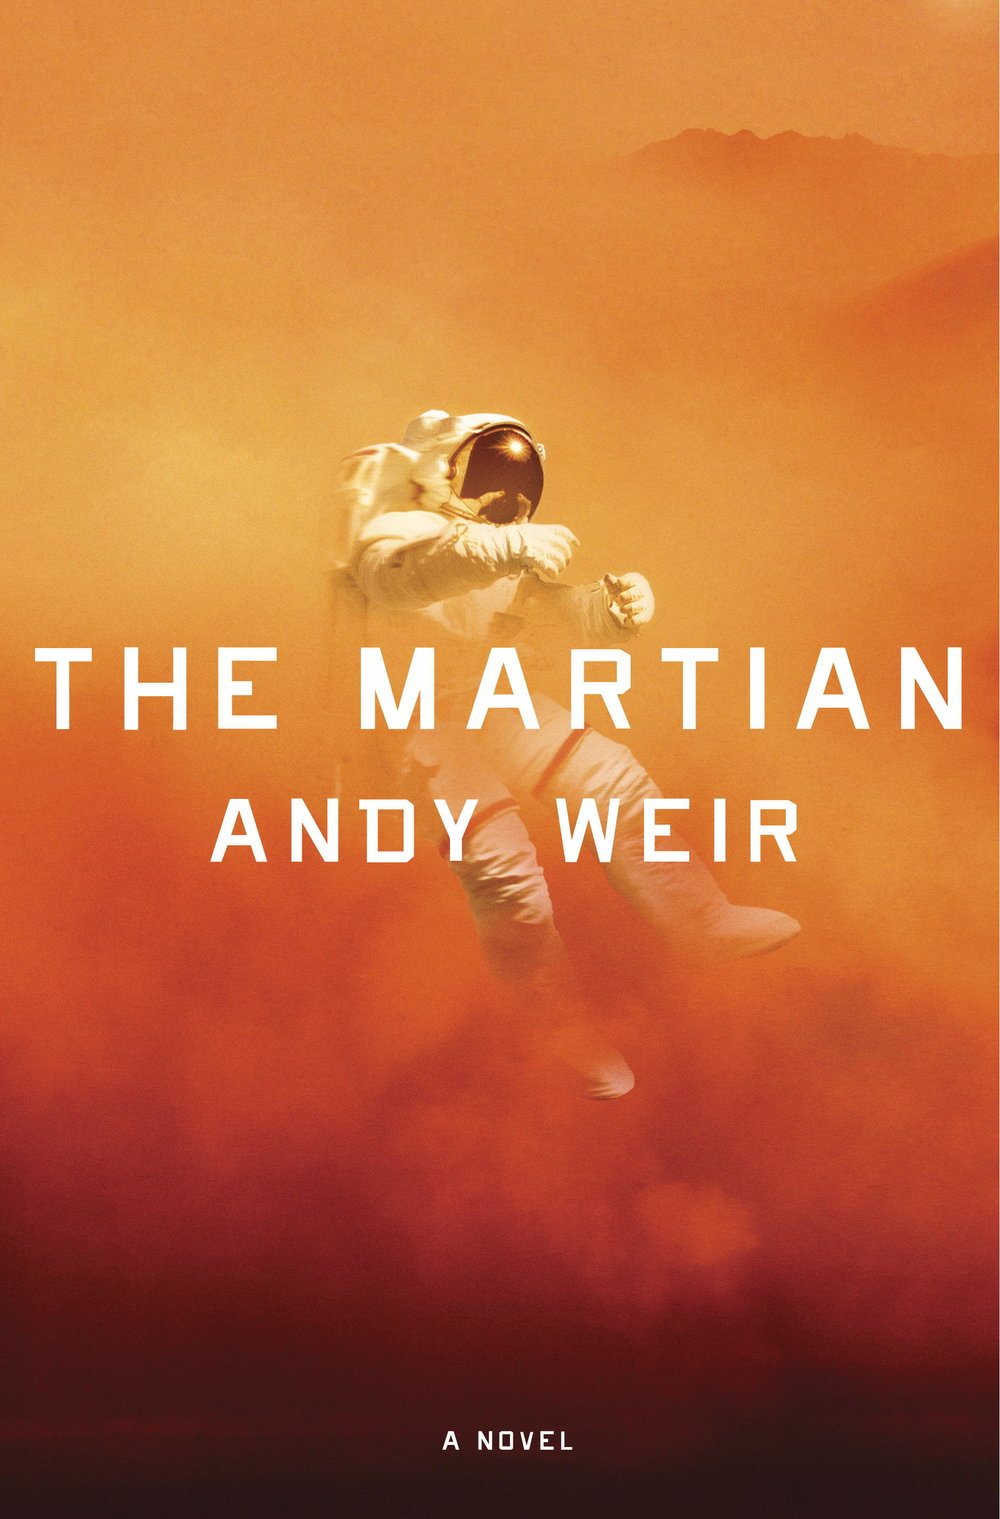 the martian by andy weir.jpg